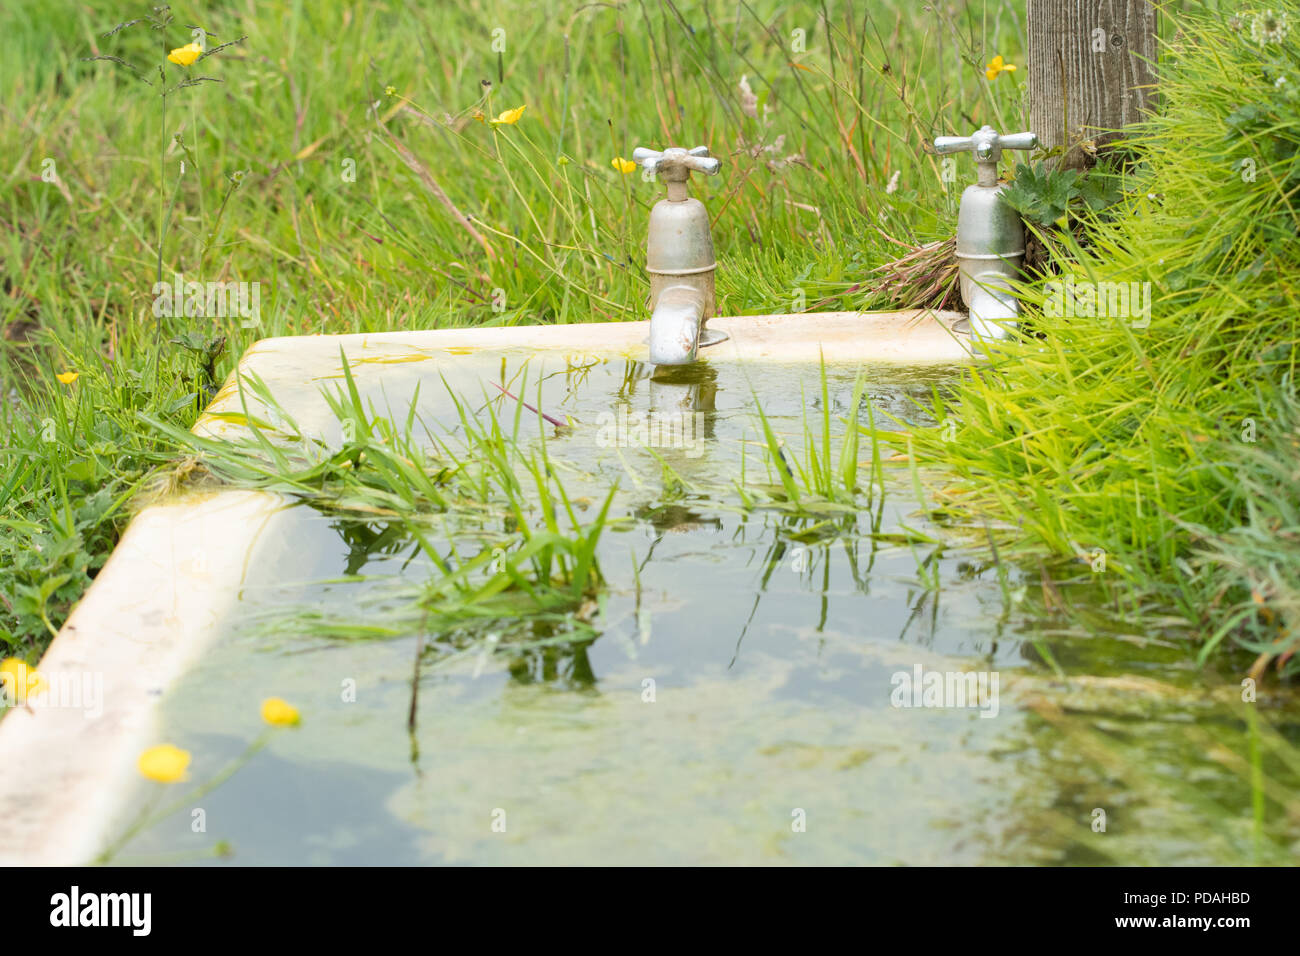 bath outside used as a cattle water trough - Scotland, UK - Stock Image